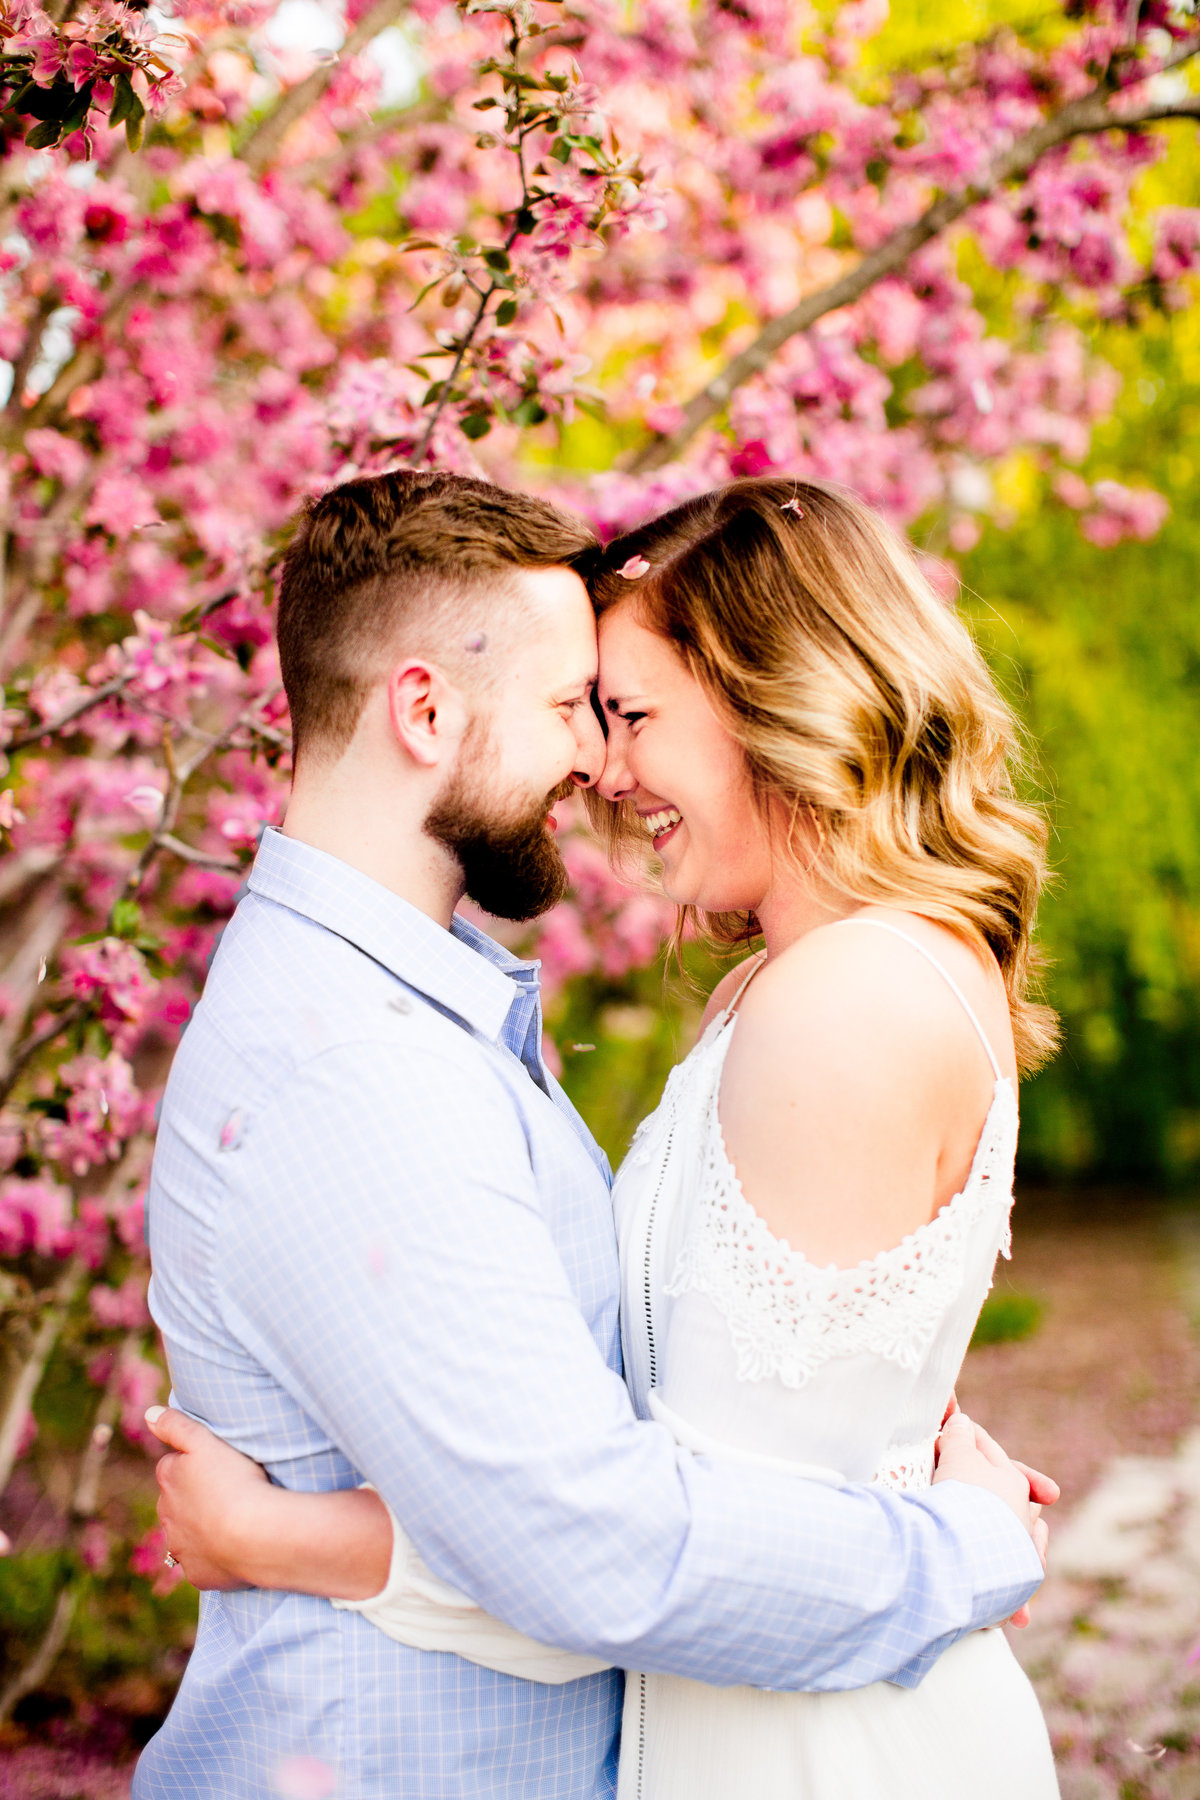 Caitlin and Luke Photography Wedding Engagement Luxury Illinois Destination Colorful Bright Joyful Cheerful Photographer17